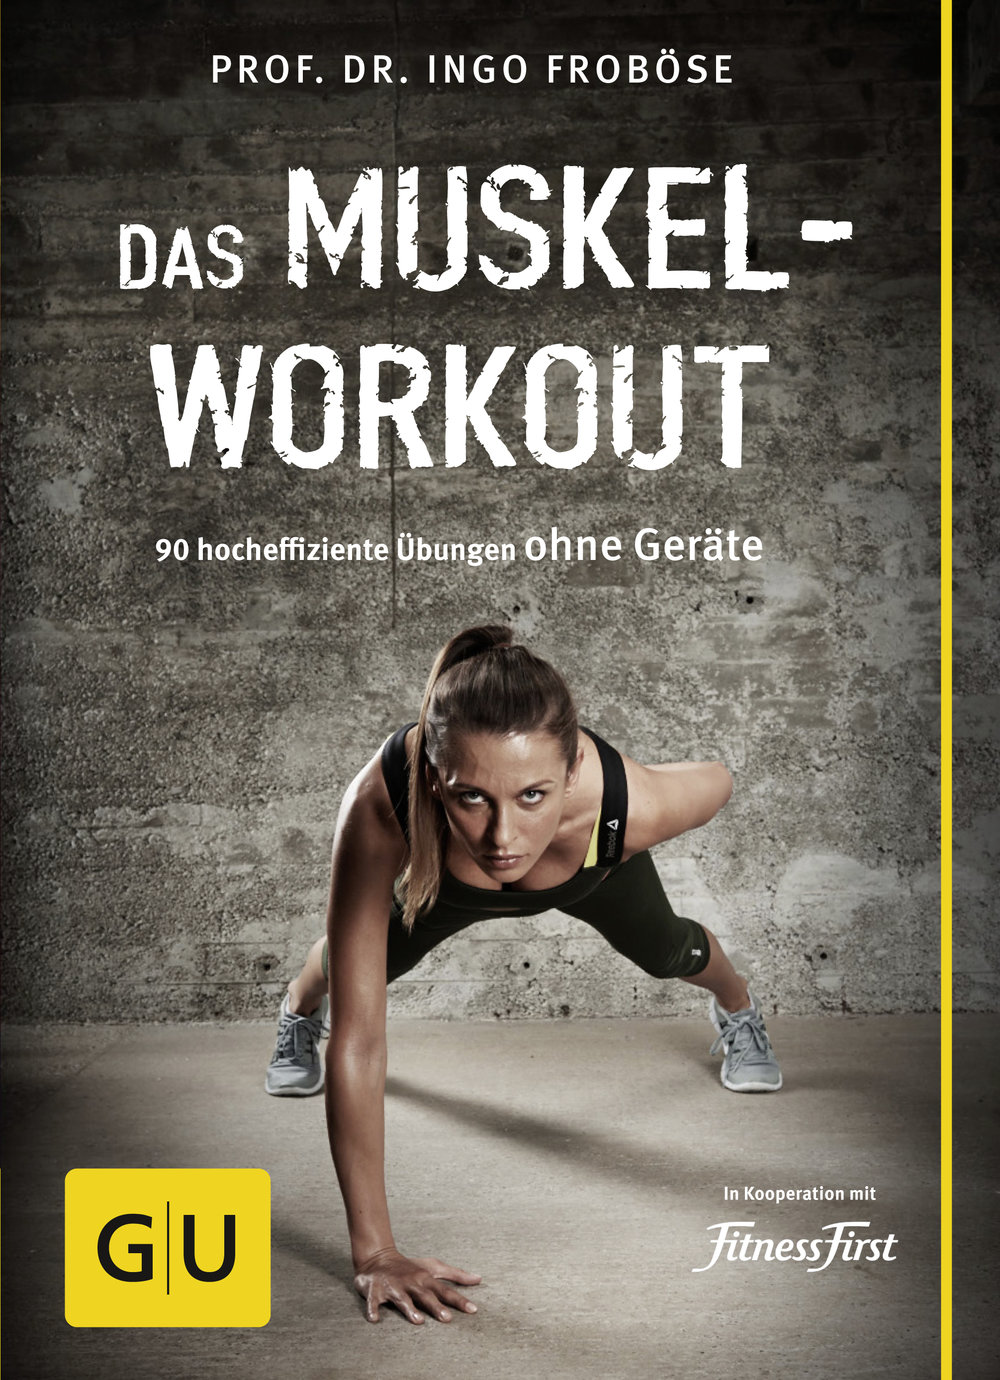 Muskel-Workout.jpg